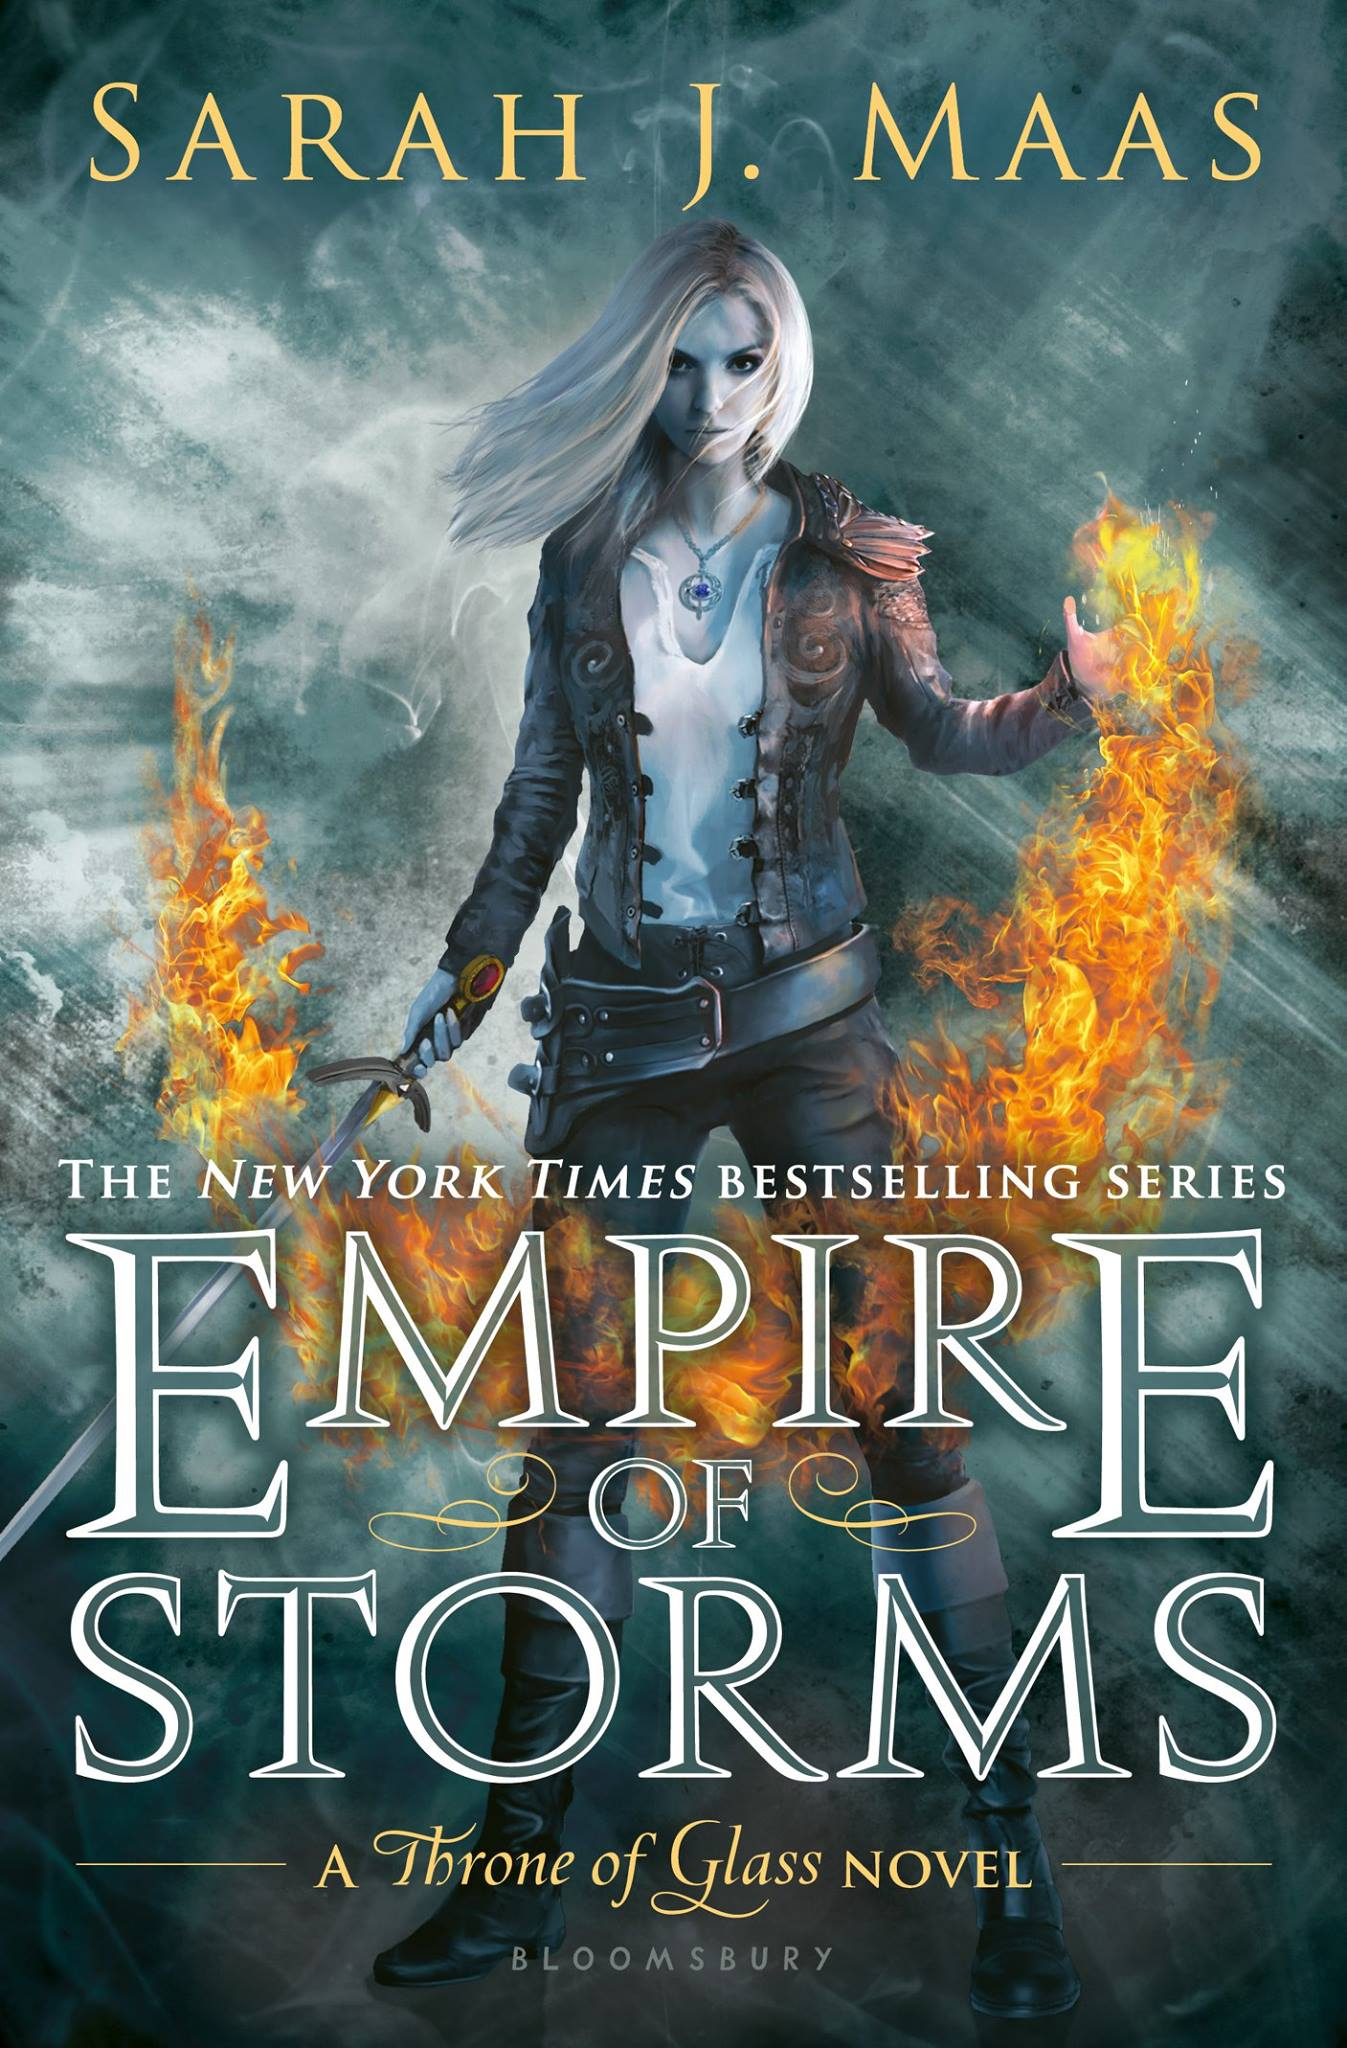 #29 Waiting on… Empire of Storms by Sarah J. Maas